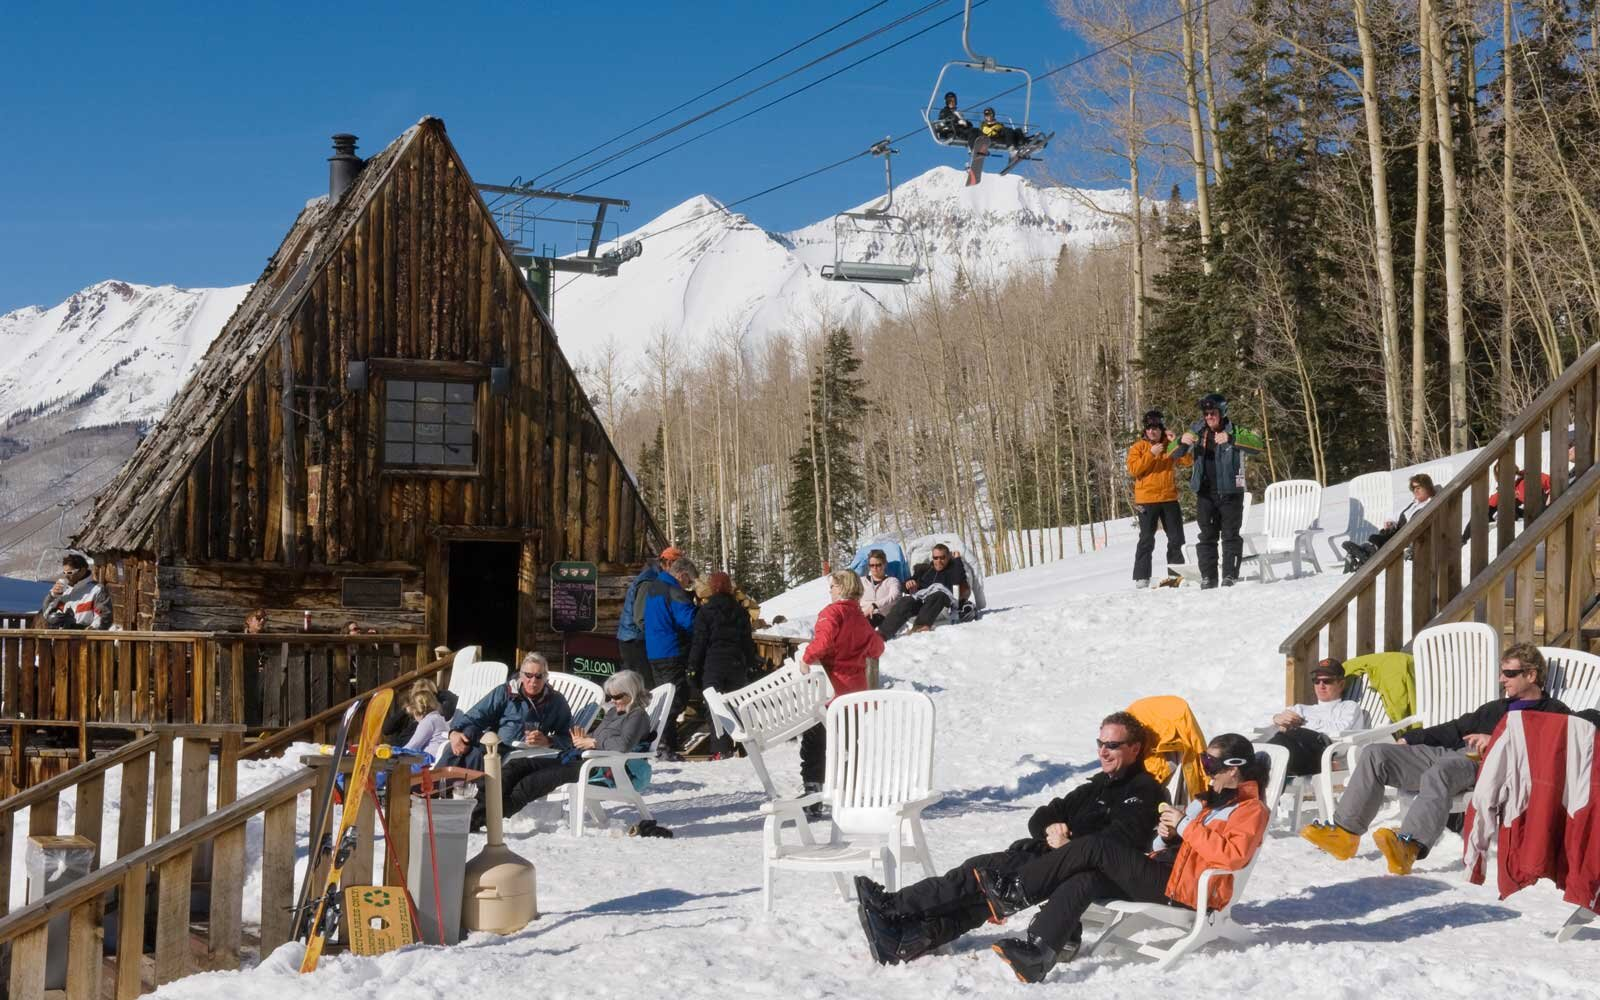 Best ski resorts in colorado for couples